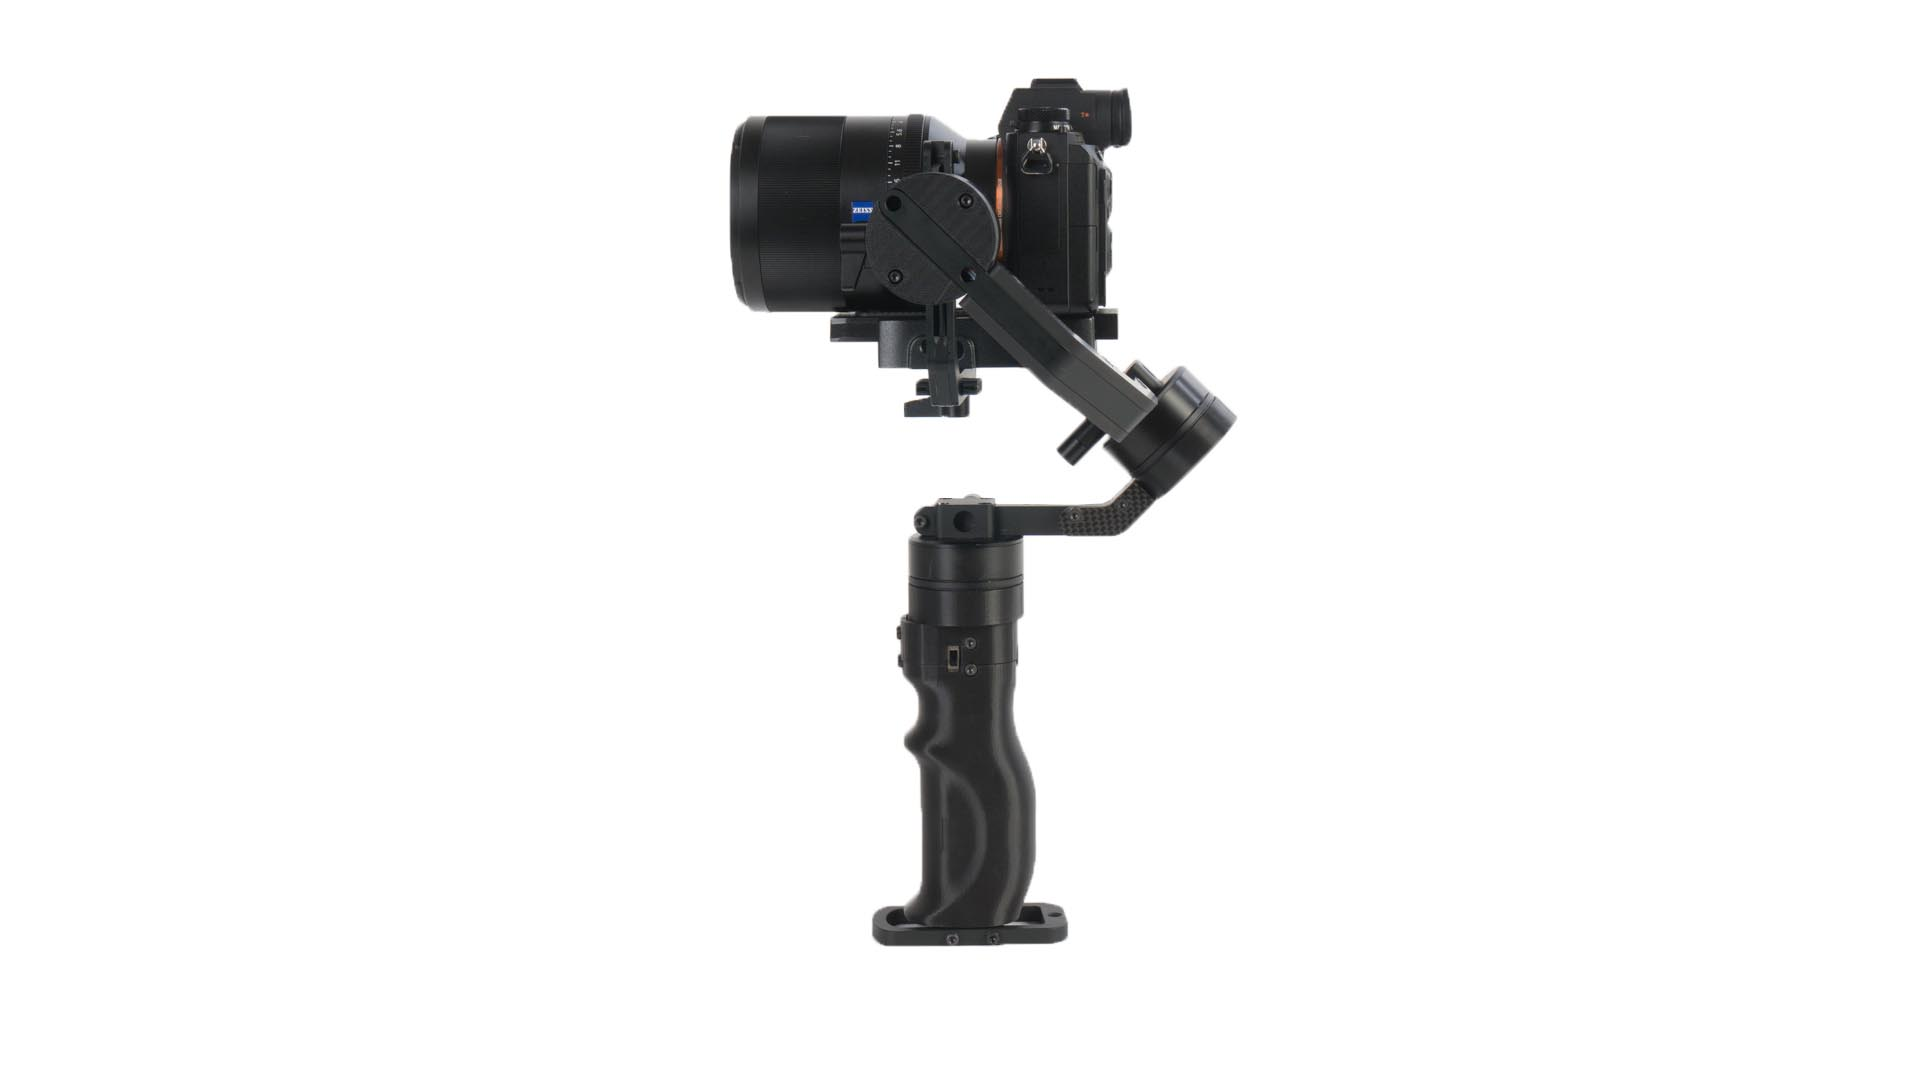 icecam gimbal tiny 3 vision 4